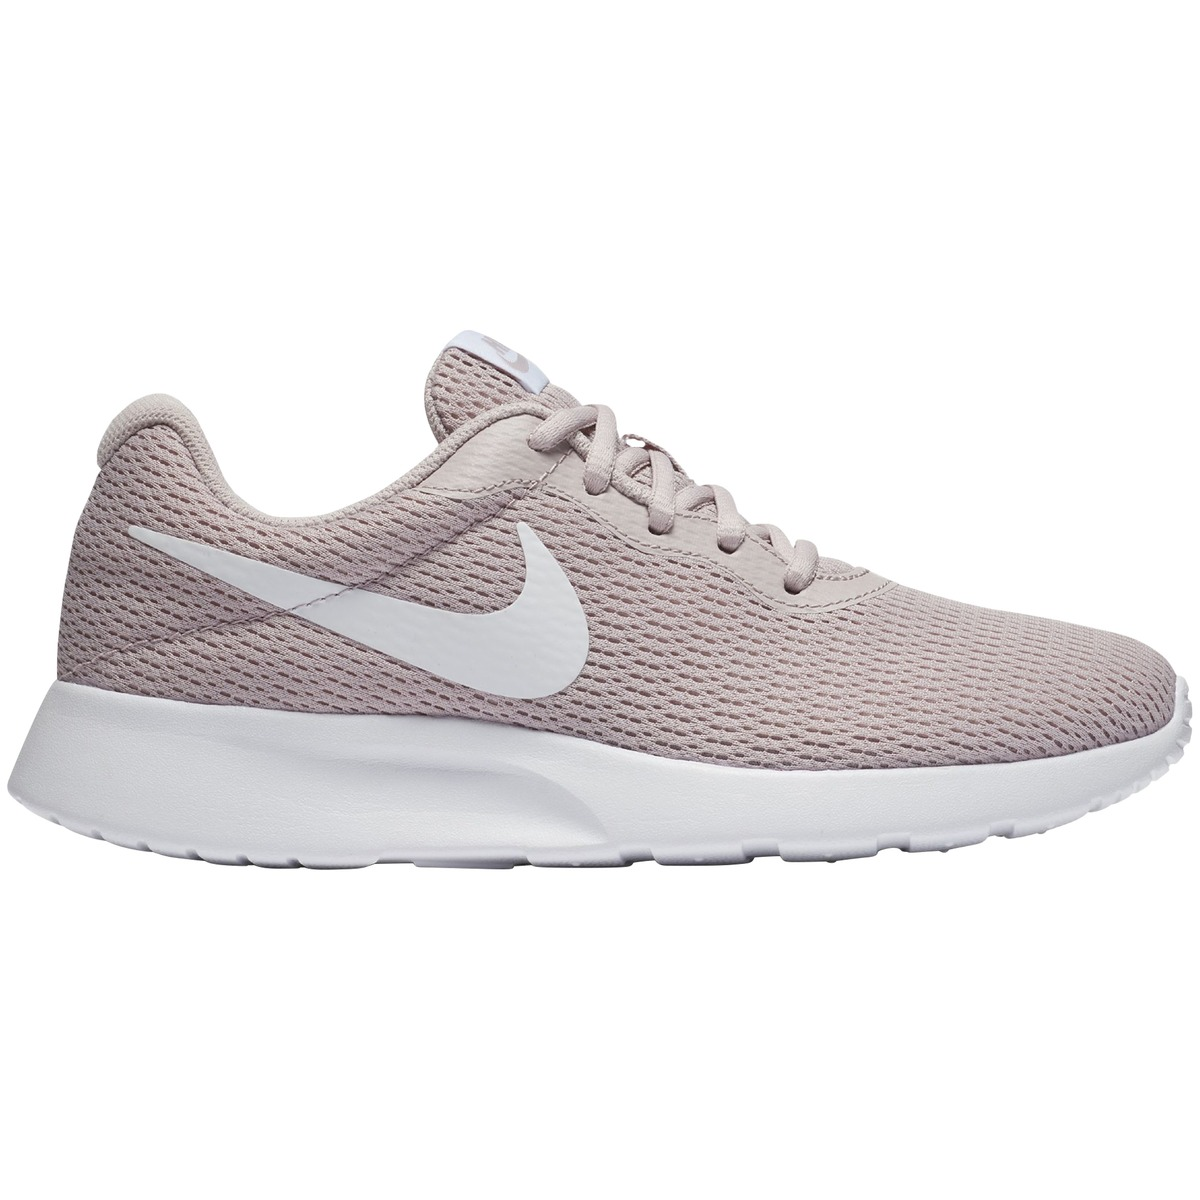 NikeTANJUN  SneakerDamen  particle rose